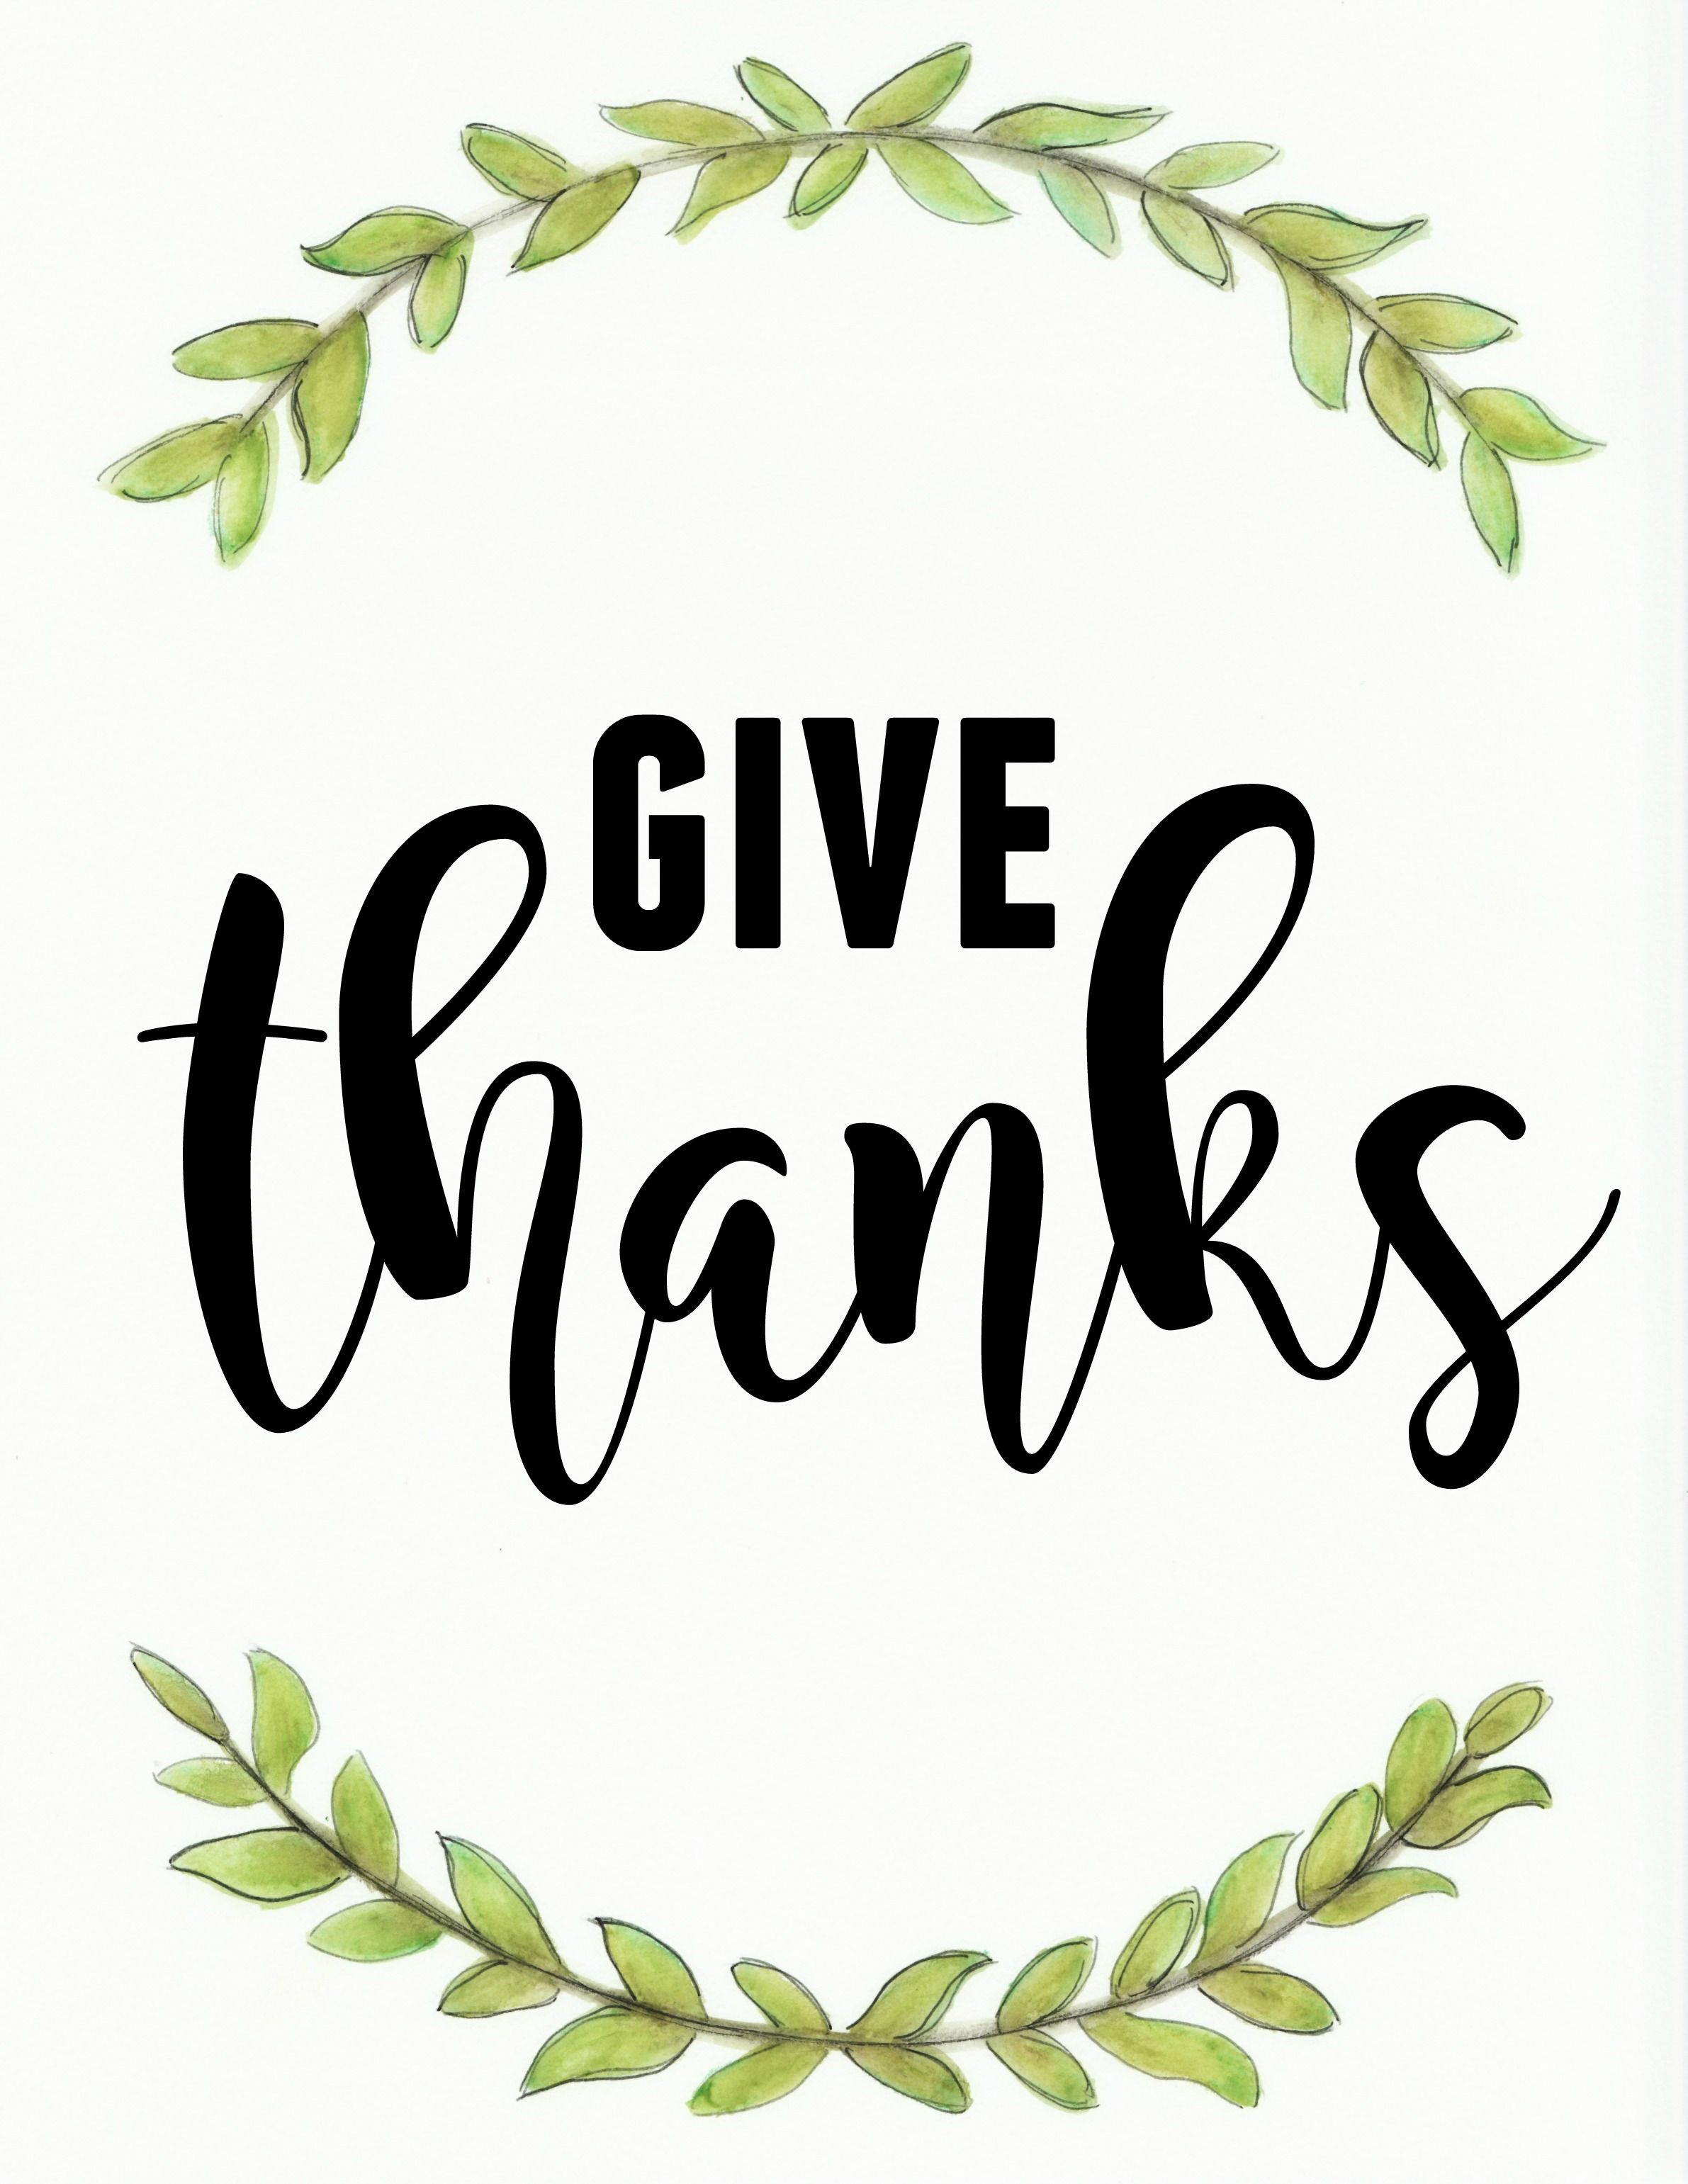 picture relating to Give Thanks Printable identify Provide Because of - November Printable! - Miss out on HOMEBODY autumn